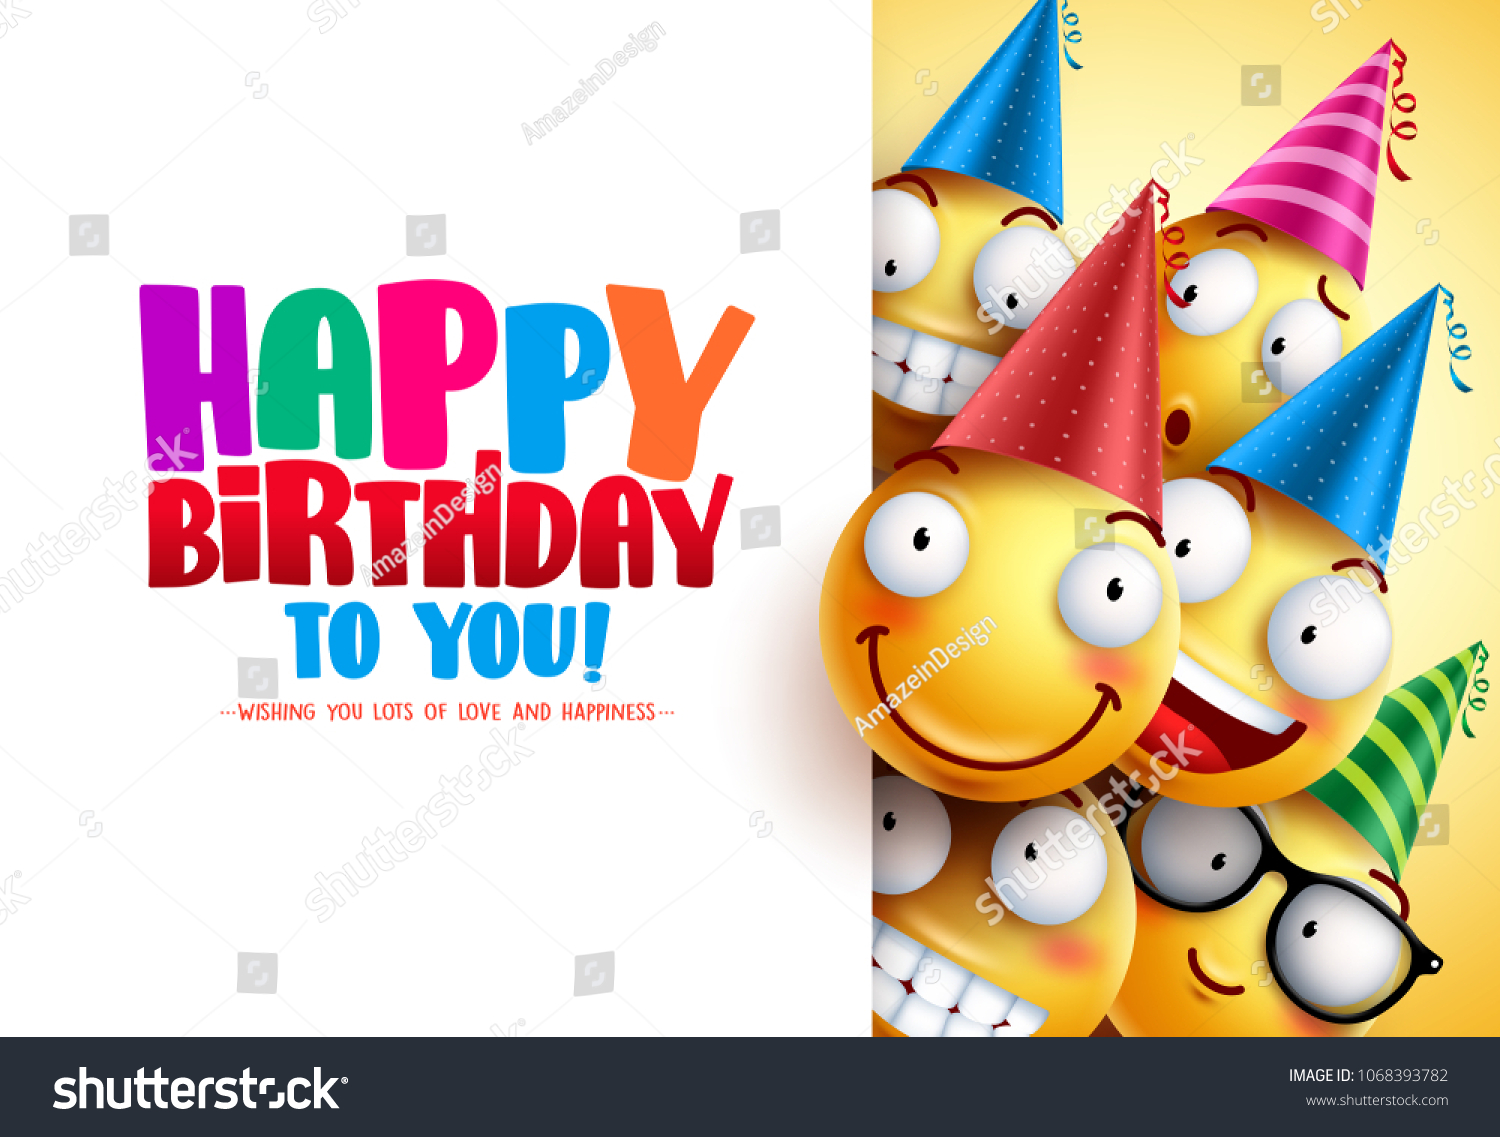 Smileys Birthday Vector Greeting Design With Yellow Funny And Happy Emoticons Wearing Colorful Party Hats